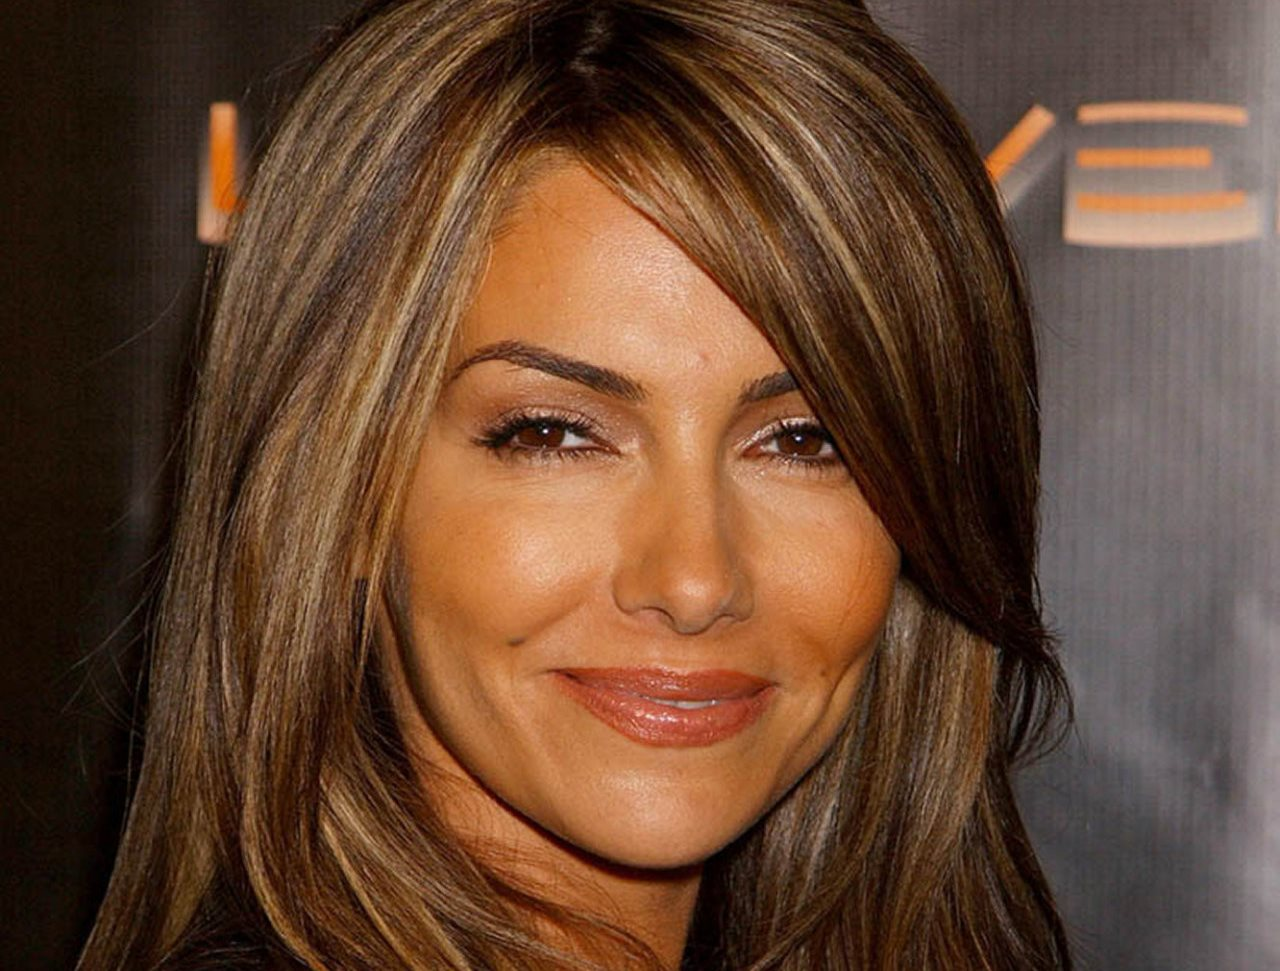 vanessa marcil princevanessa marcil wiki, vanessa marcil 90210, vanessa marcil son, vanessa marcil the rock, vanessa marcil instagram, vanessa marcil young, vanessa marcil, vanessa marcil 2015, vanessa marcil twitter, vanessa marcil 2014, vanessa marcil brian austin green, vanessa marcil beverly hills 90210, vanessa marcil giovinazzo, vanessa marcil las vegas, vanessa marcil engaged, vanessa marcil net worth, vanessa marcil prince